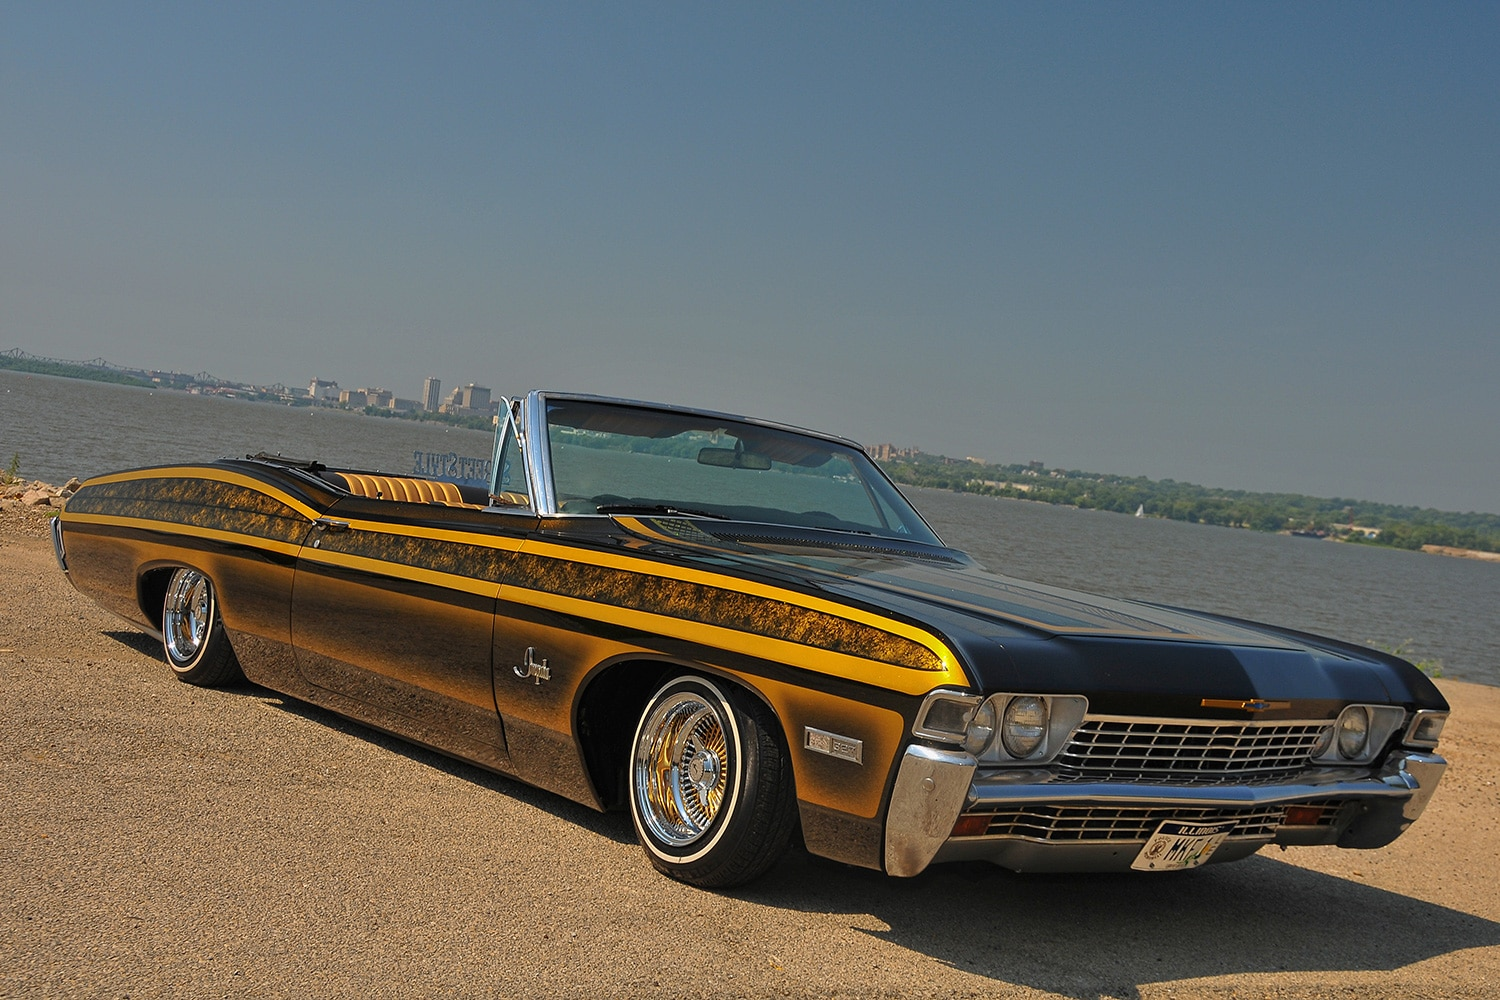 Used 2014 Chevy Impala >> 1968 Chevrolet Impala - Lethal Weapon